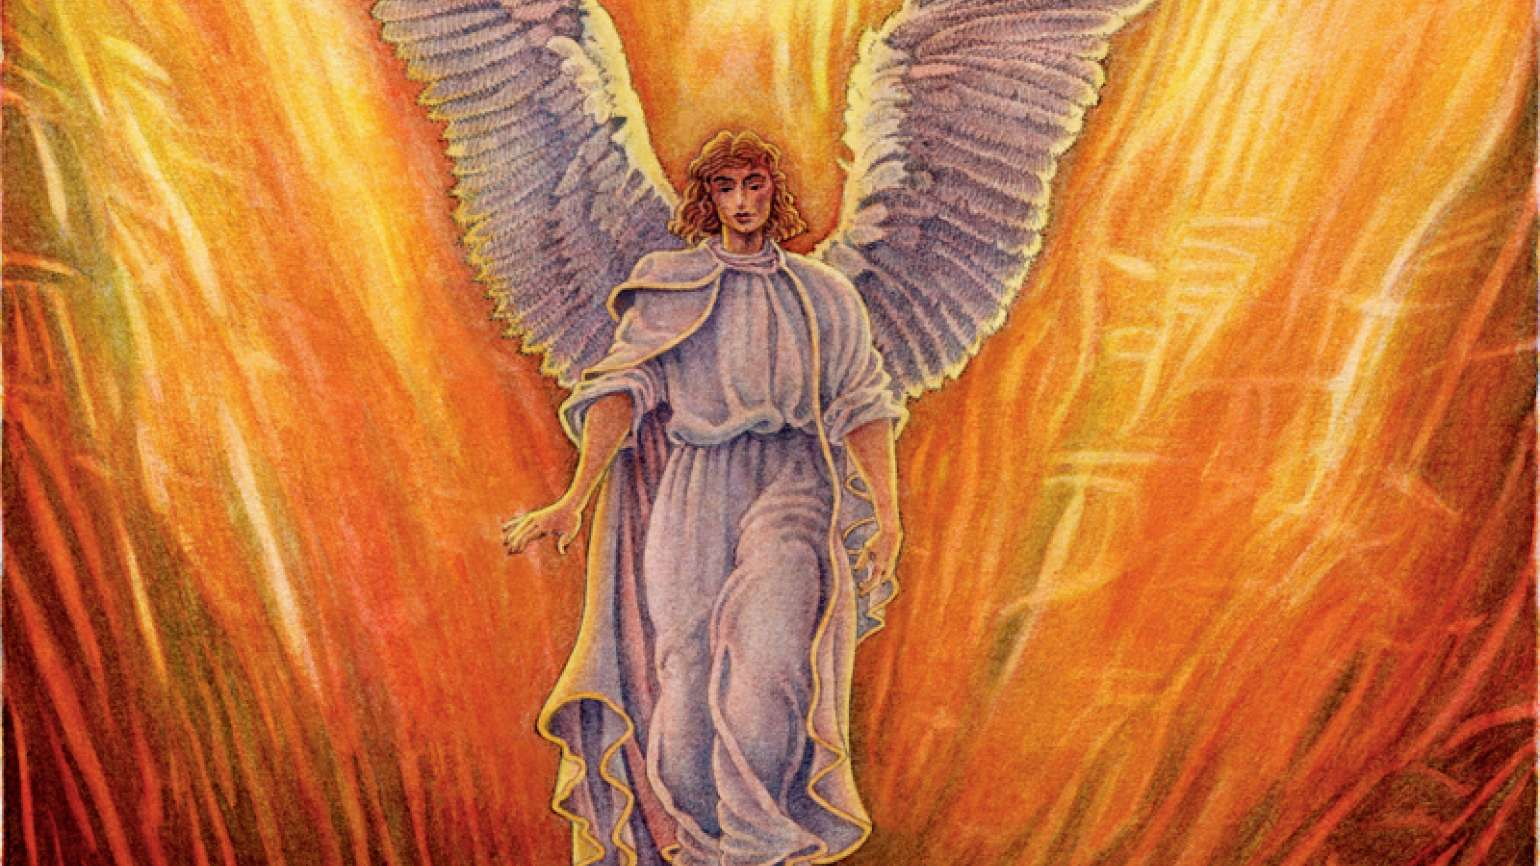 An artist's rendering of an angel flying above a raging fire